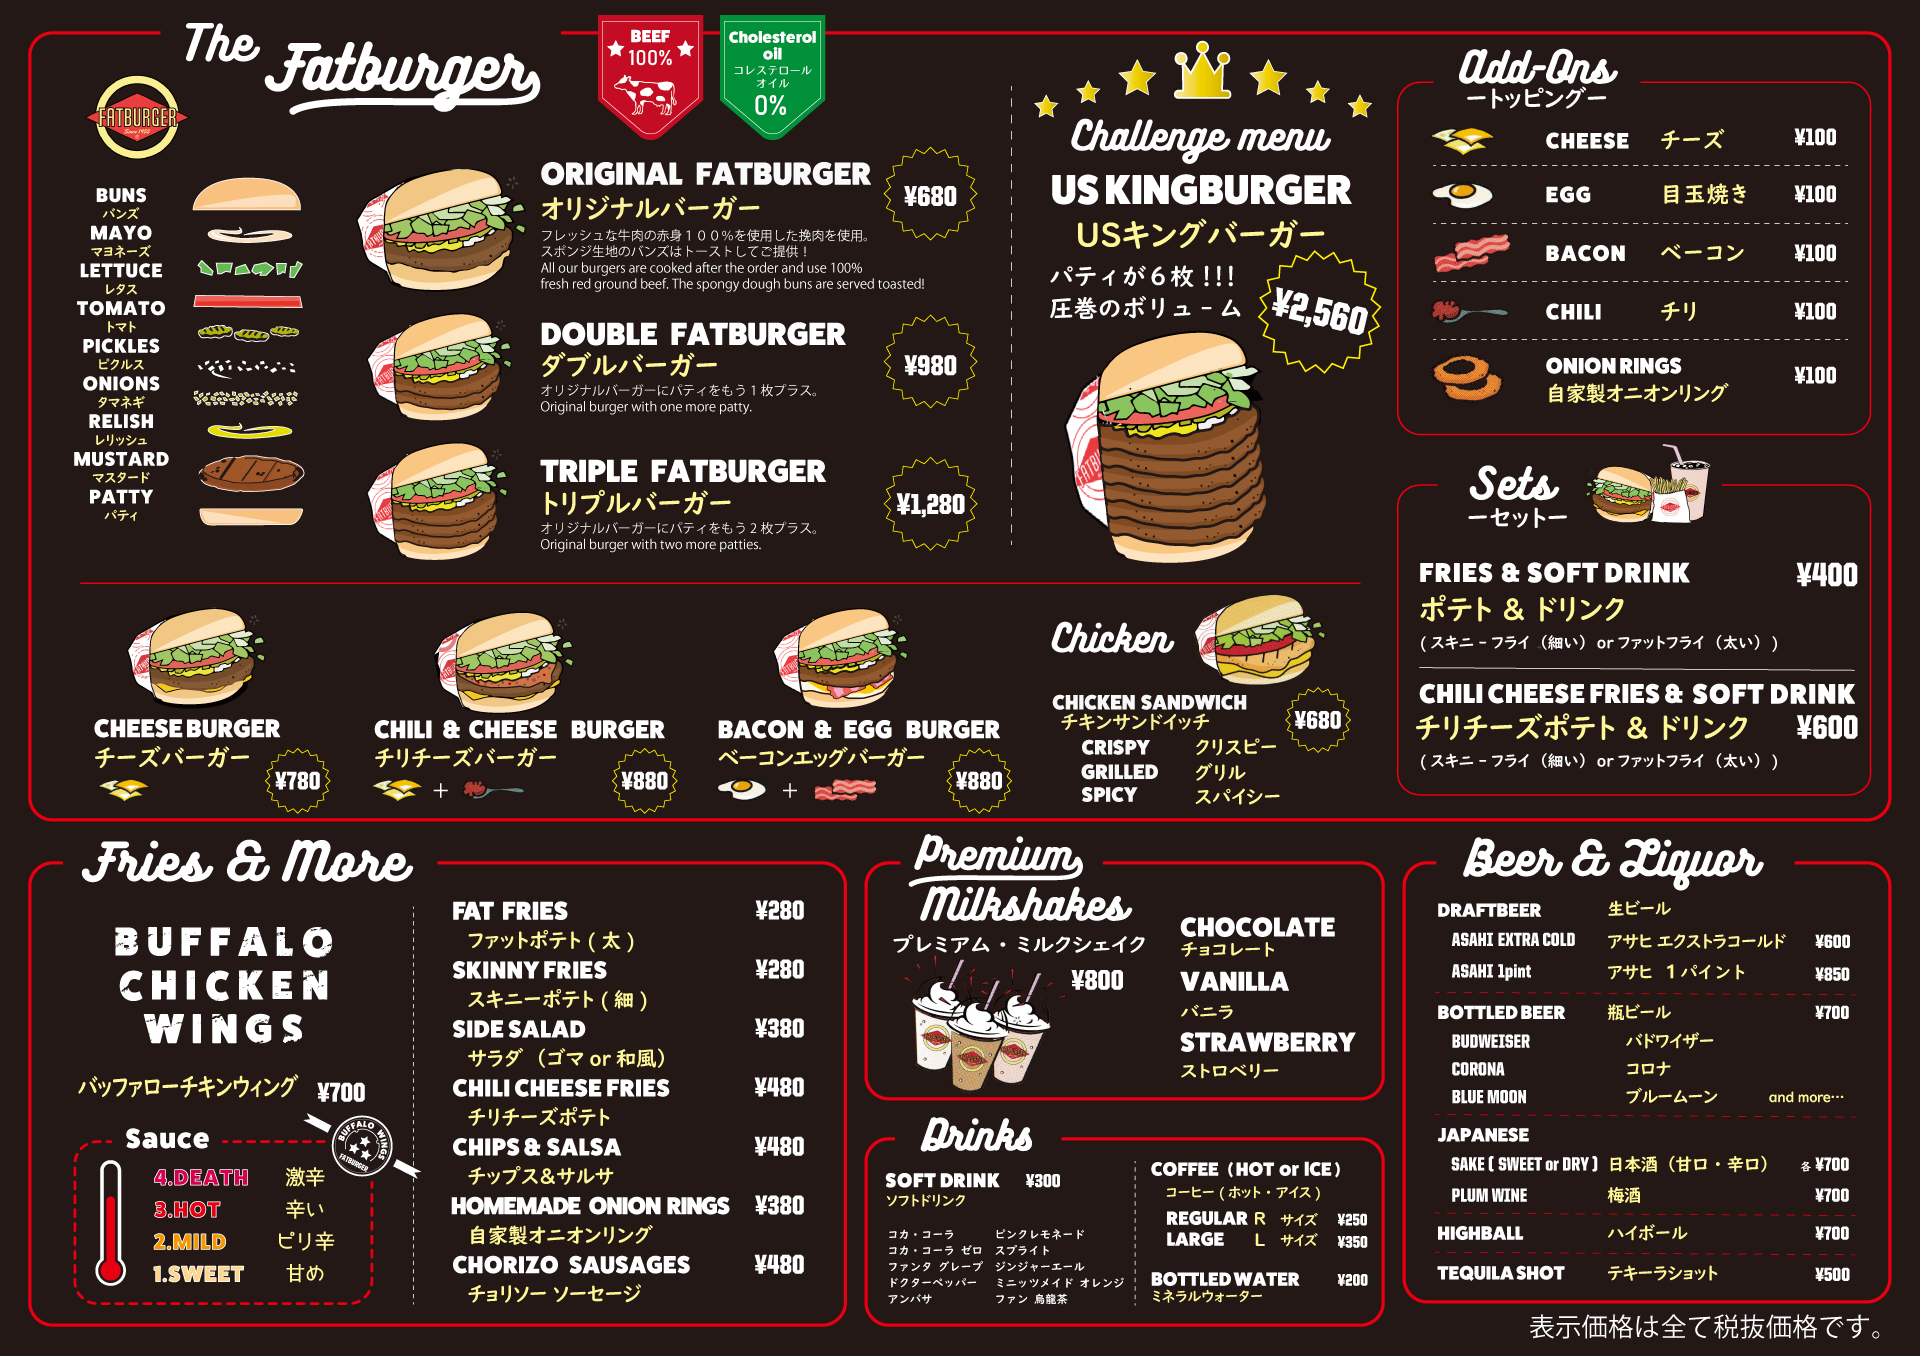 Our Menu - Click on the image to enlarge it as well as see our selection of Fatbar drinks.画像をクリックすると大きくなります。そしてバーメニューも見えます。